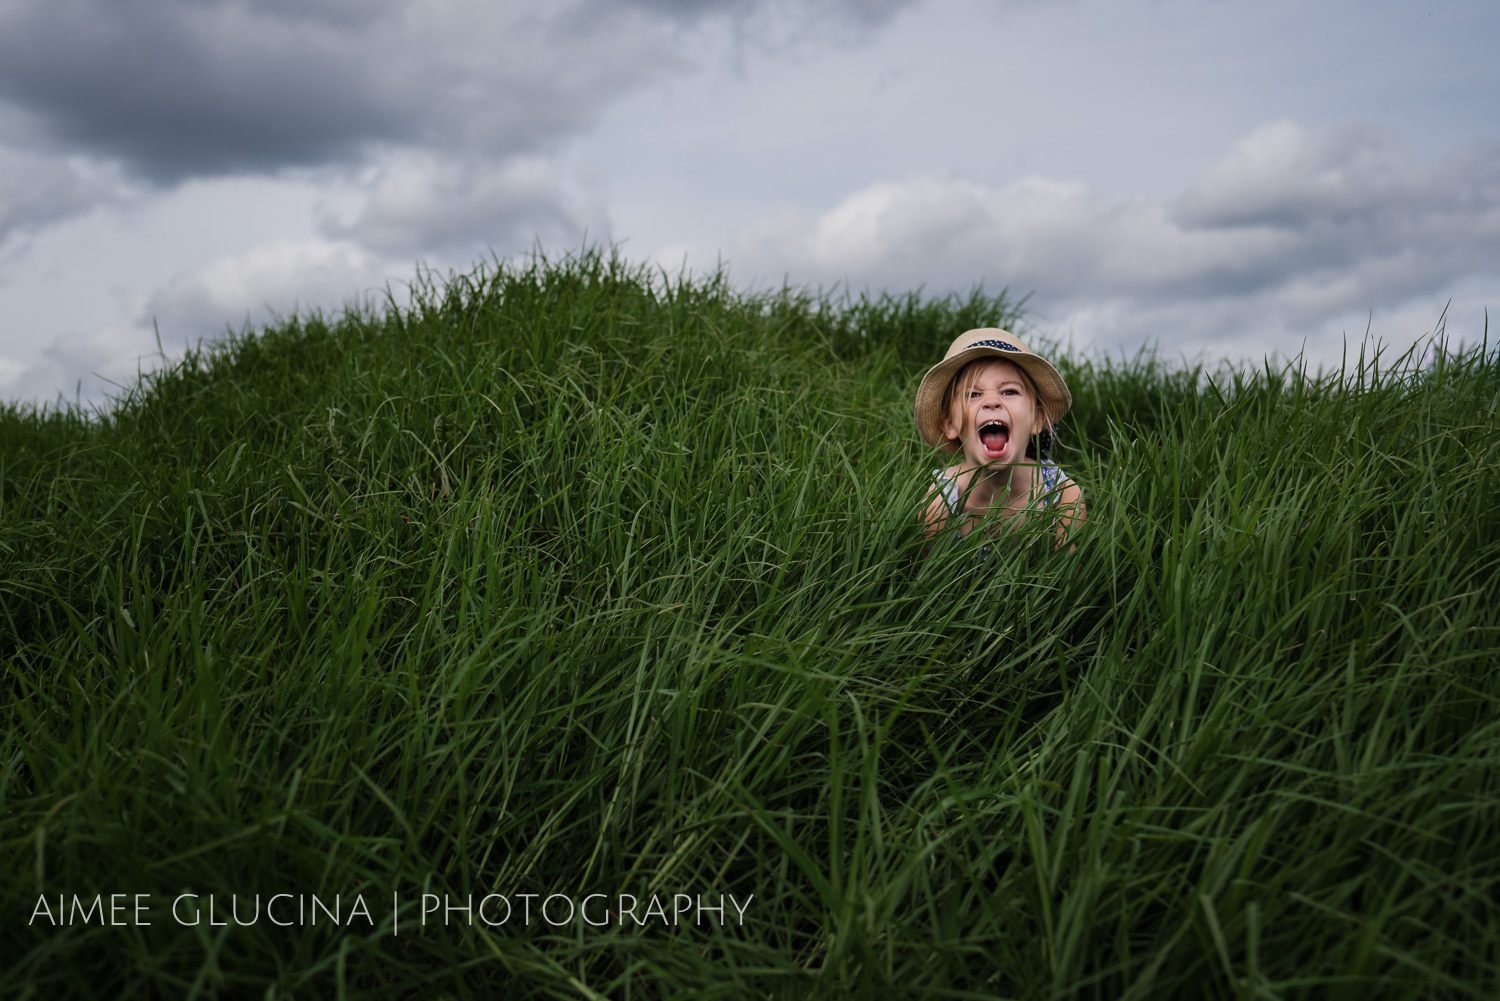 Girl Roaring by Aimee Glucina Photography.jpg